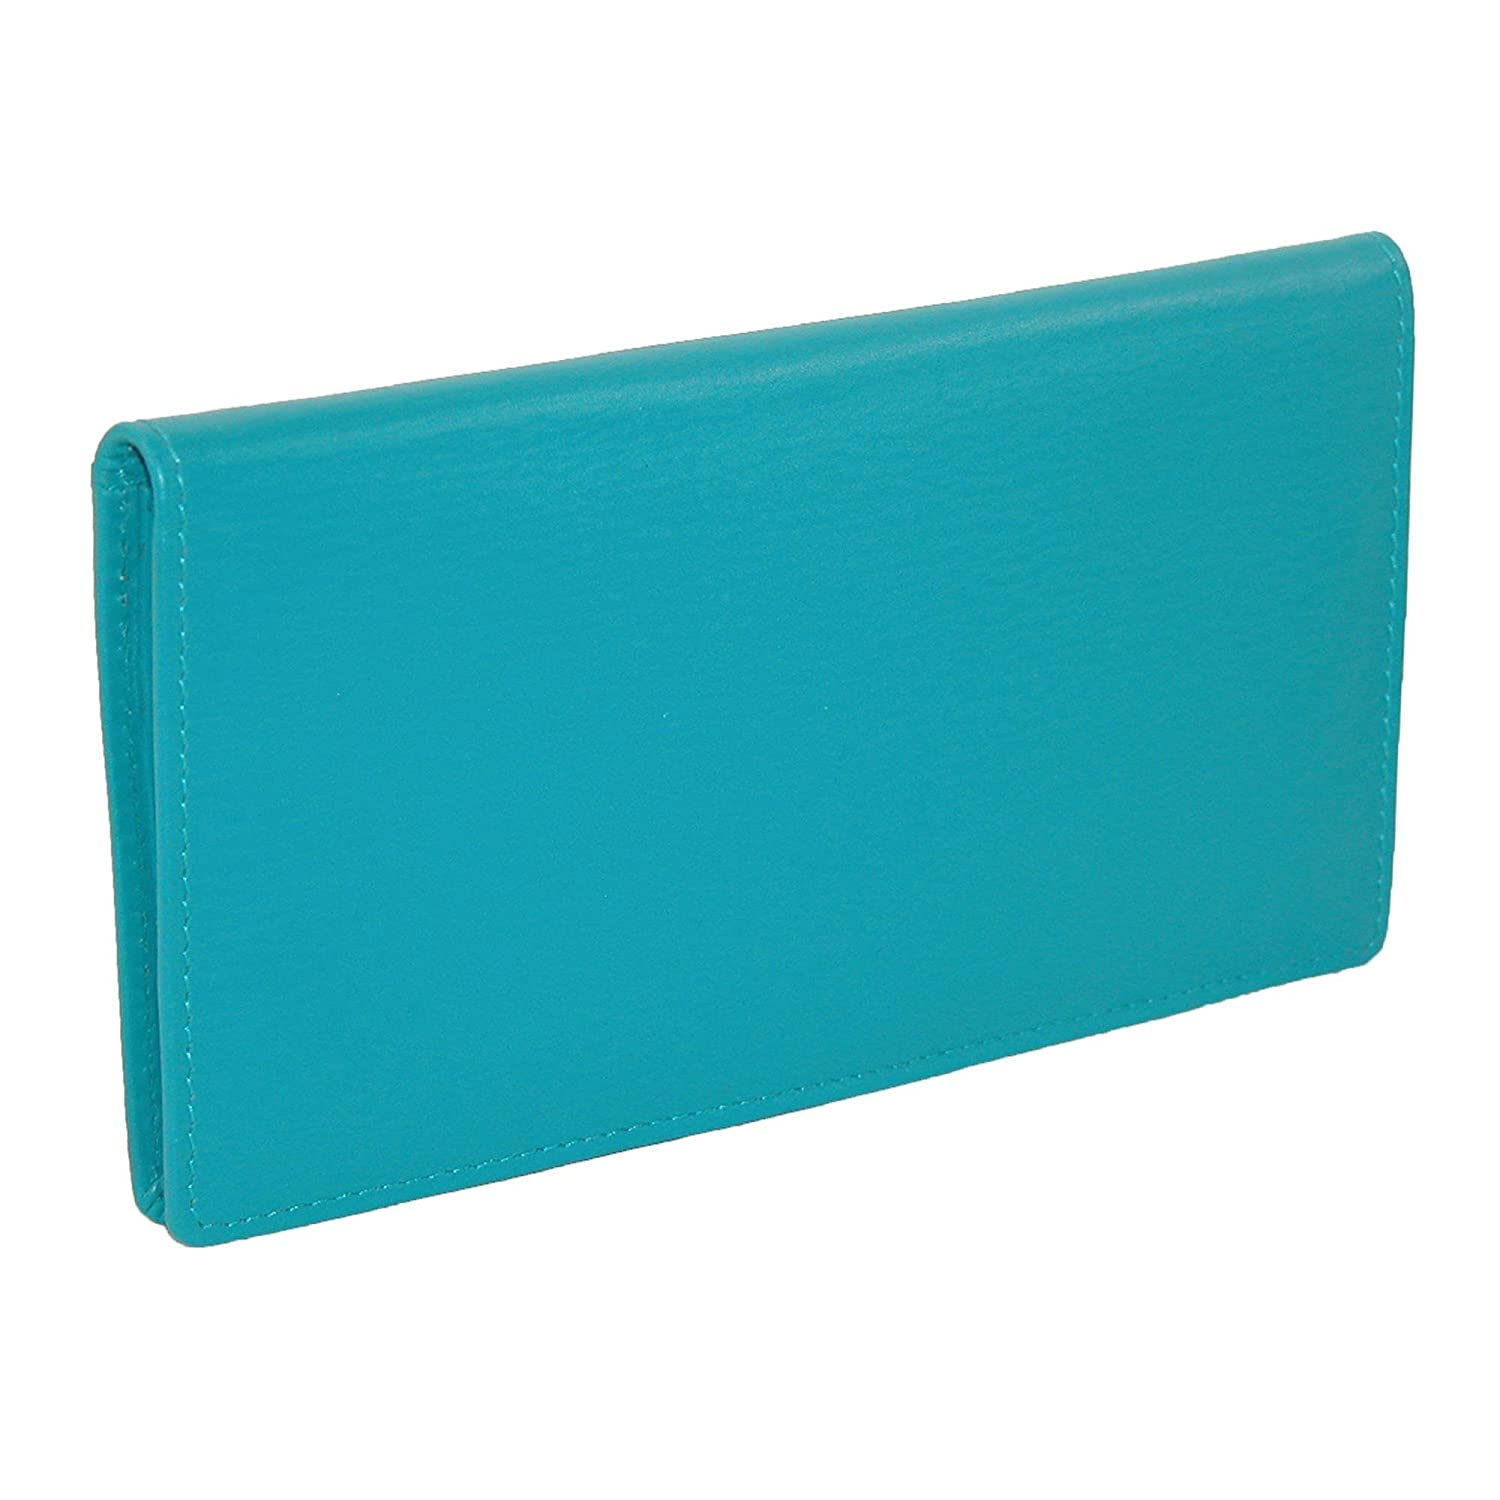 CTM® Women's Leather Basic Checkbook Cover in Fashion Colors, Aqua IL-7406-AQU